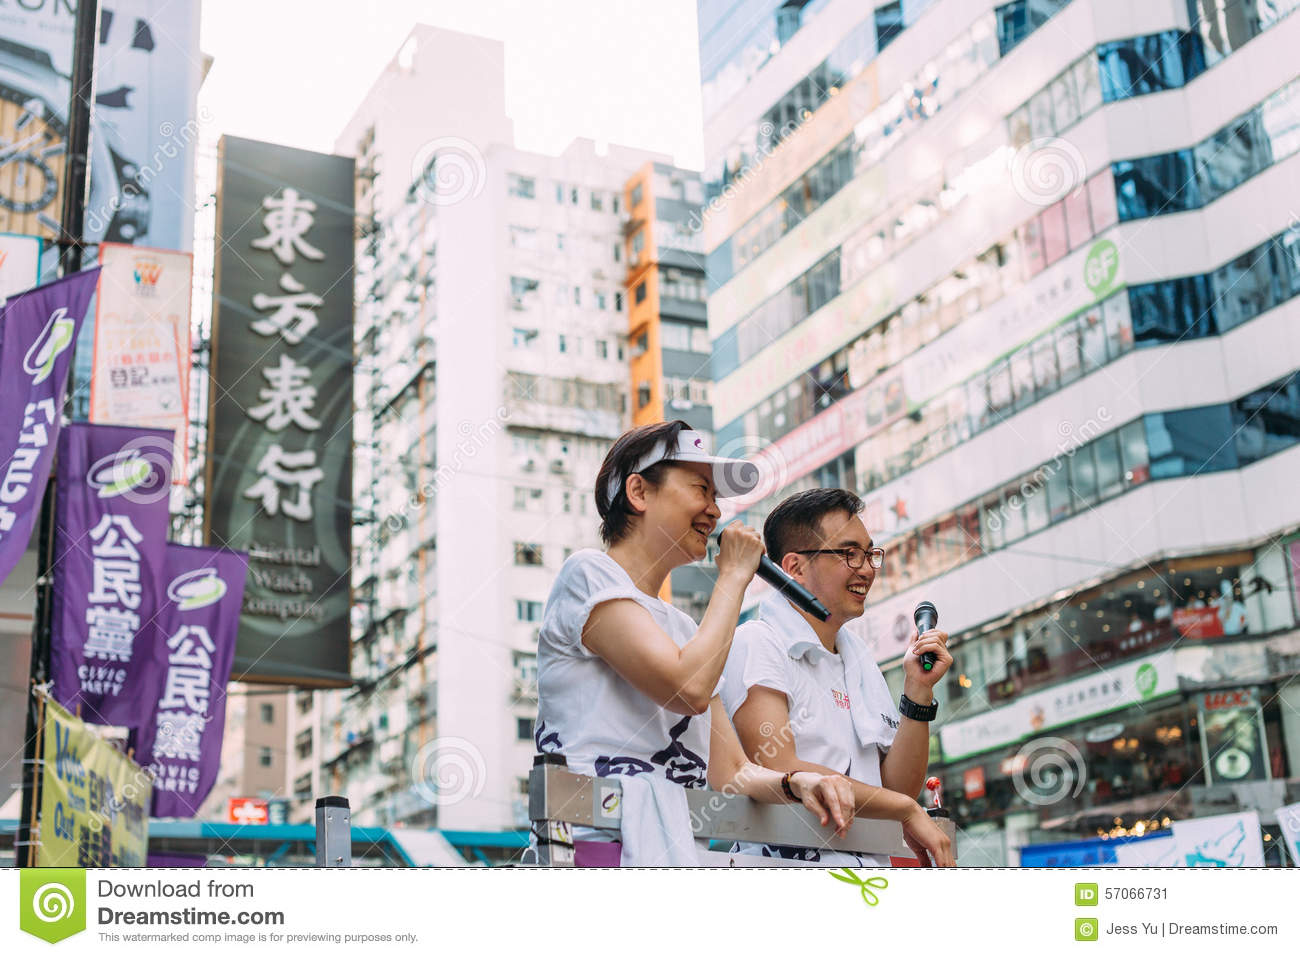 1 July protest in Hong Kong. Channel, 2015.